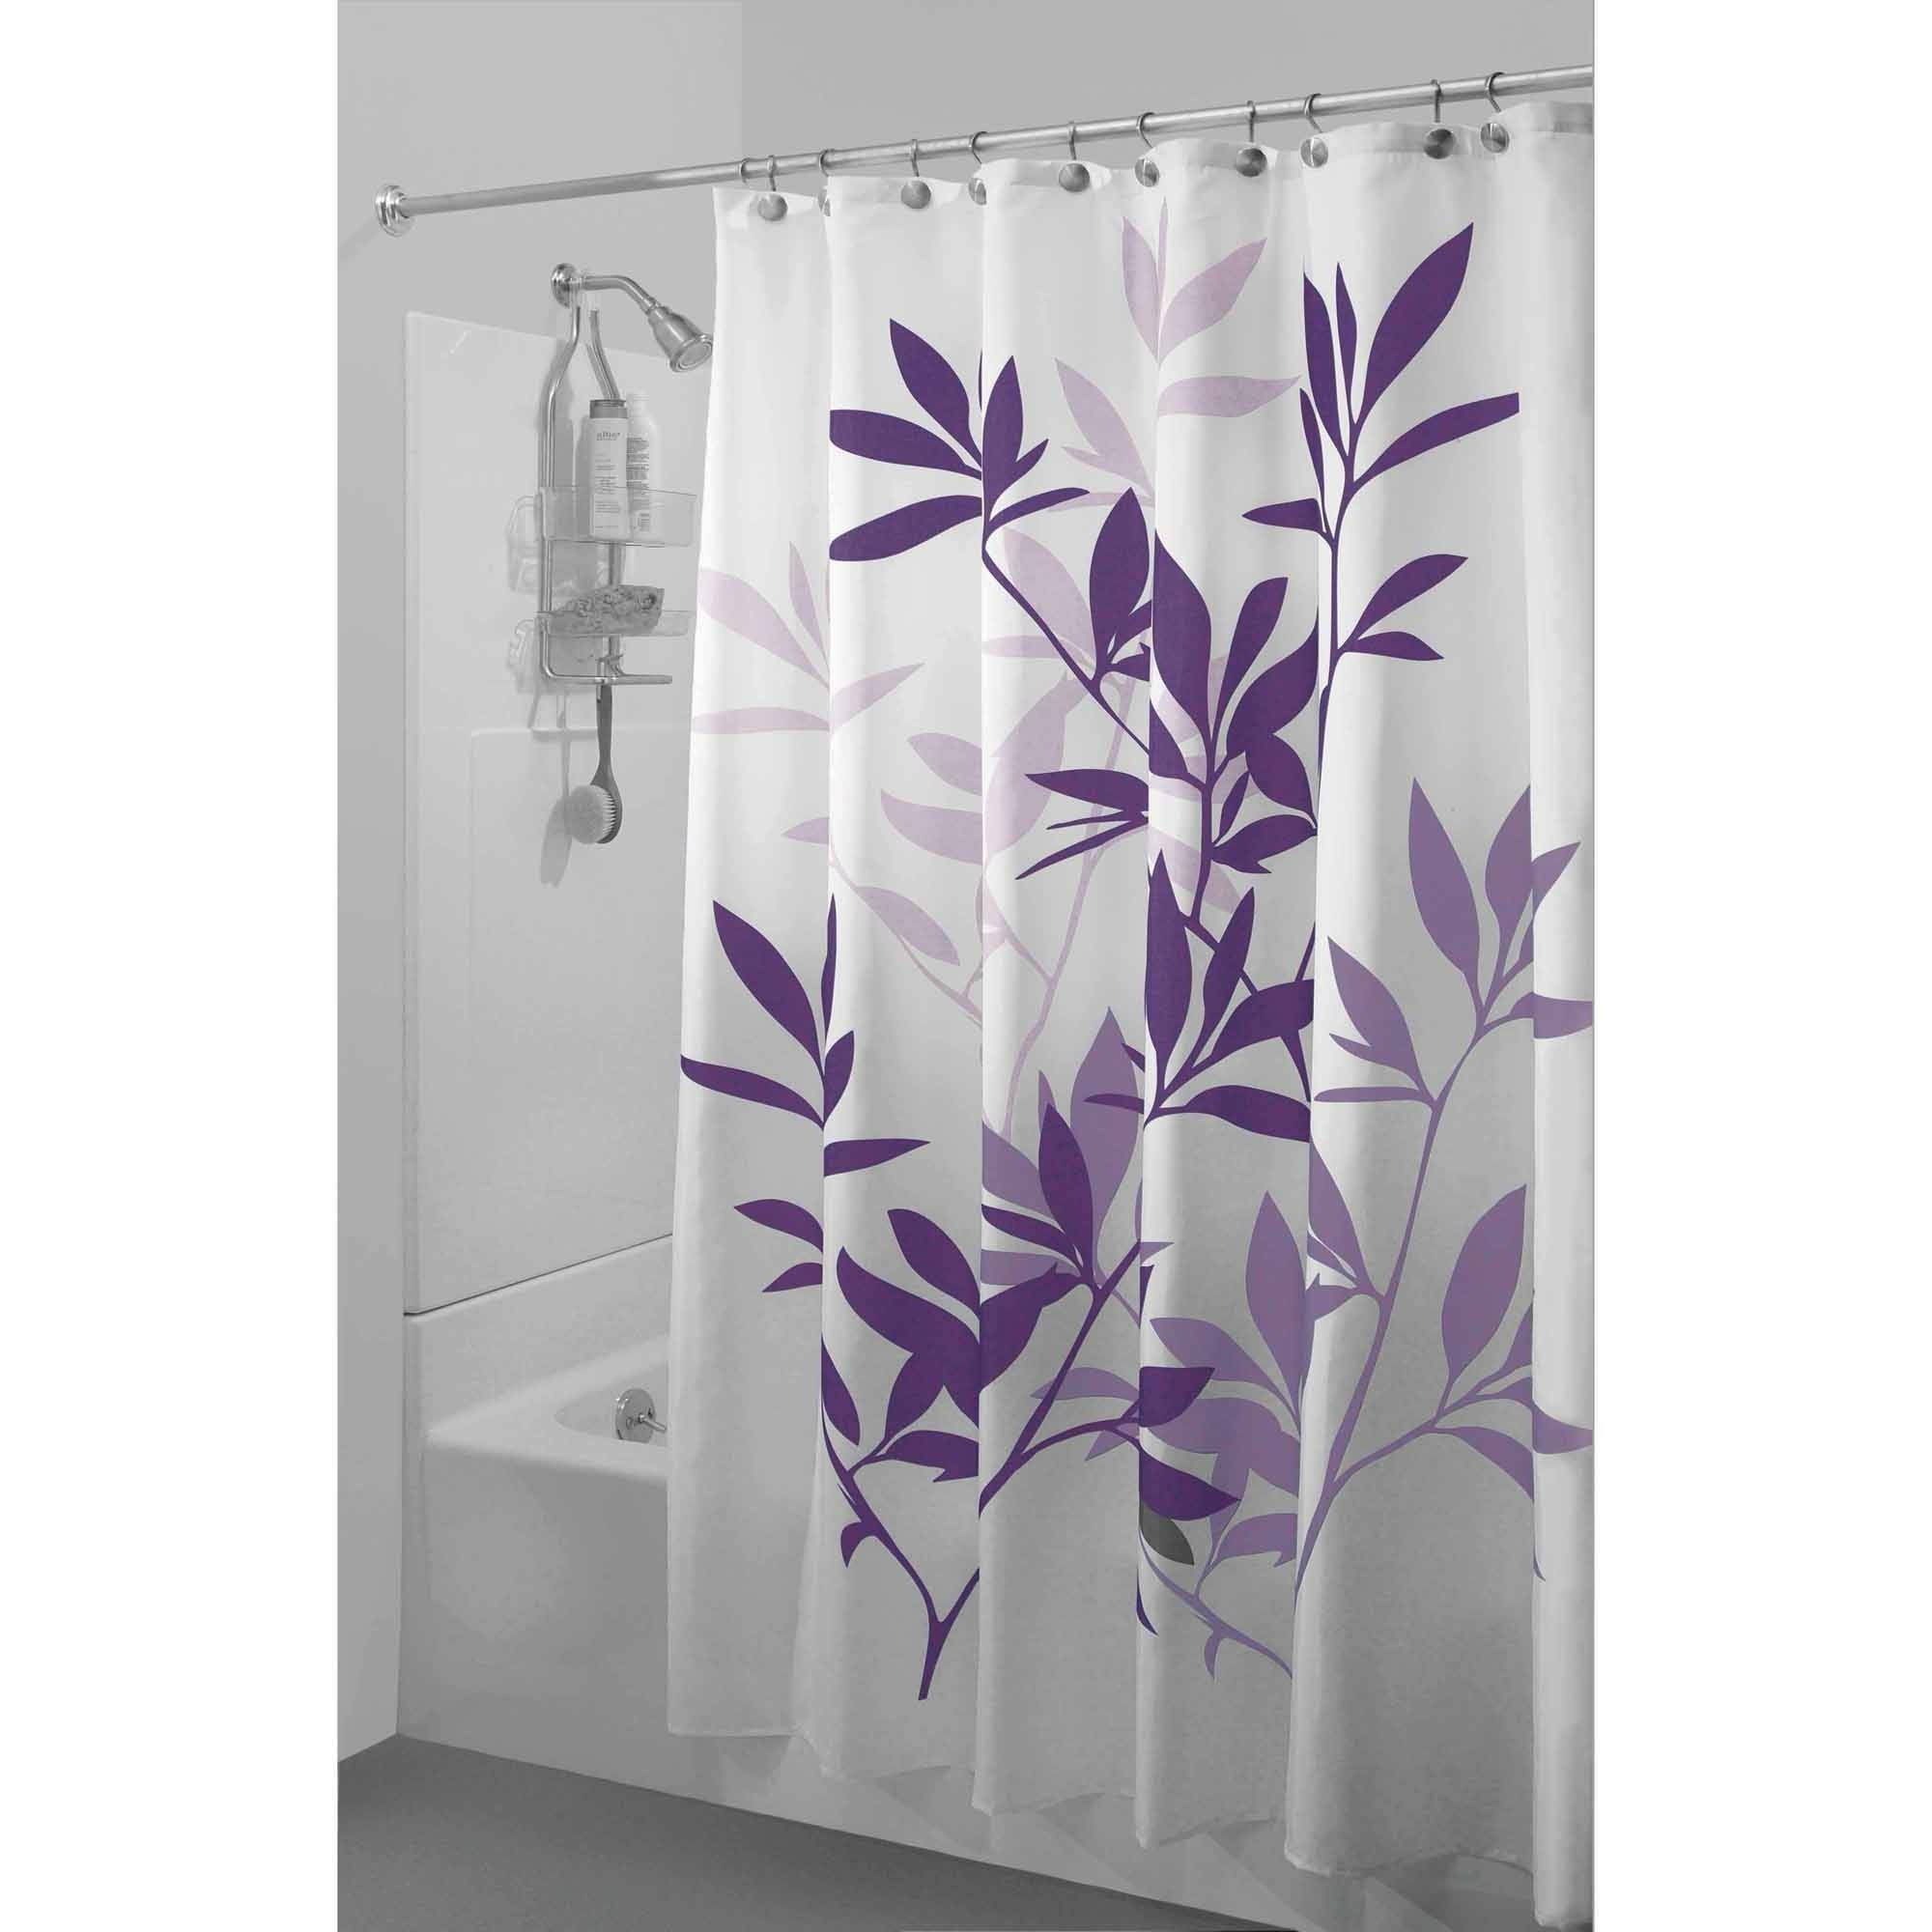 treetop curtain bath shower xxx bed rings market world category curtains do